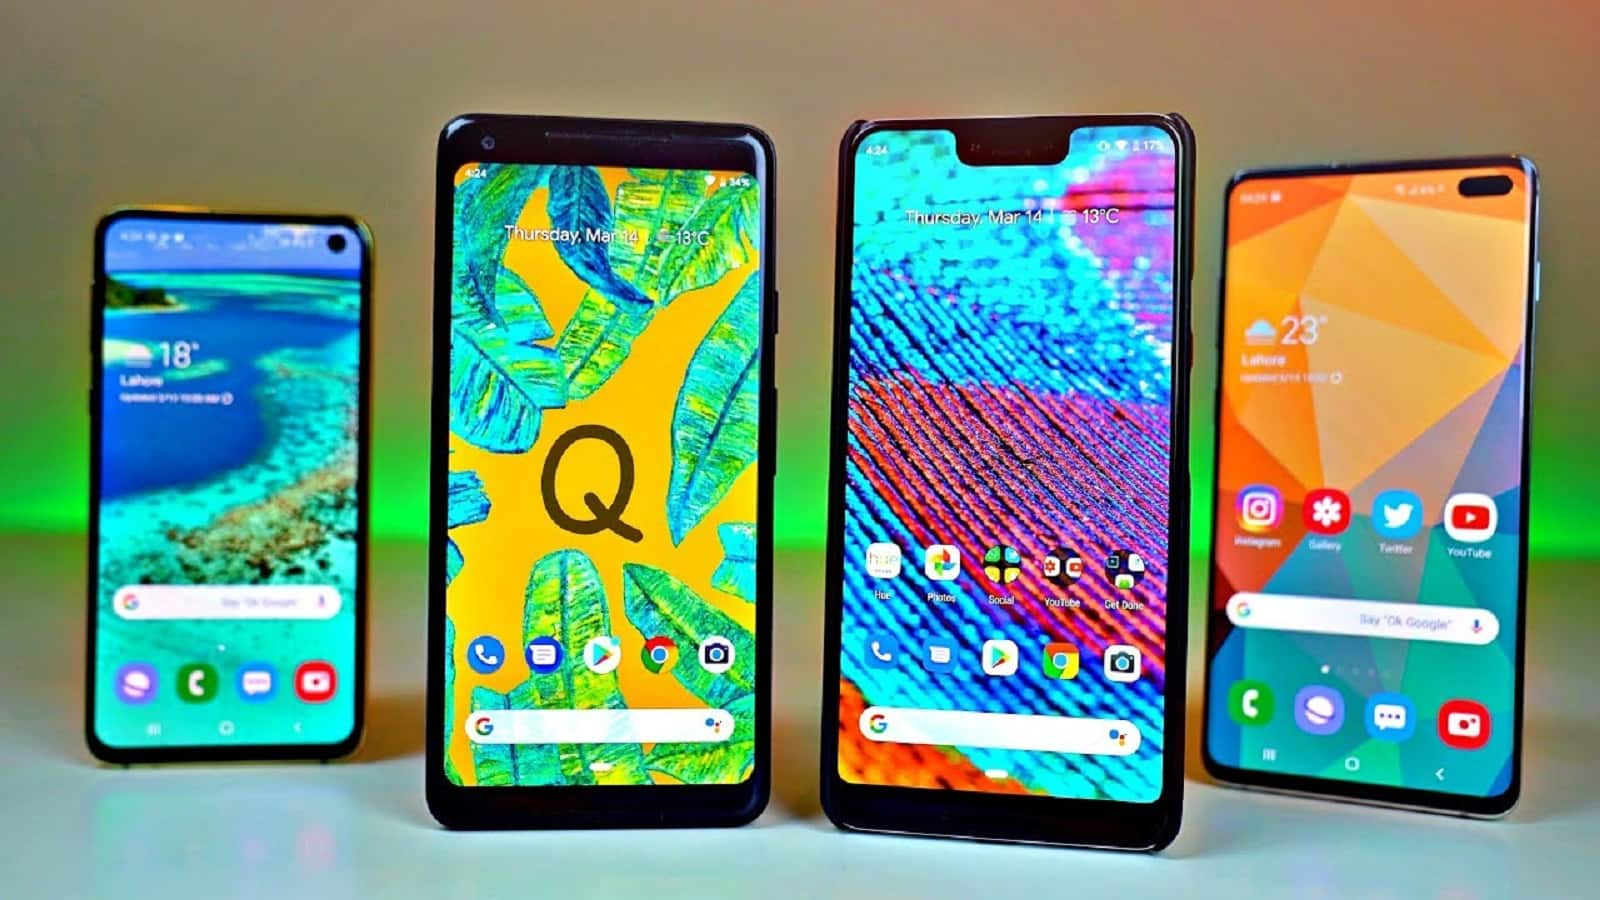 android q on various android devices